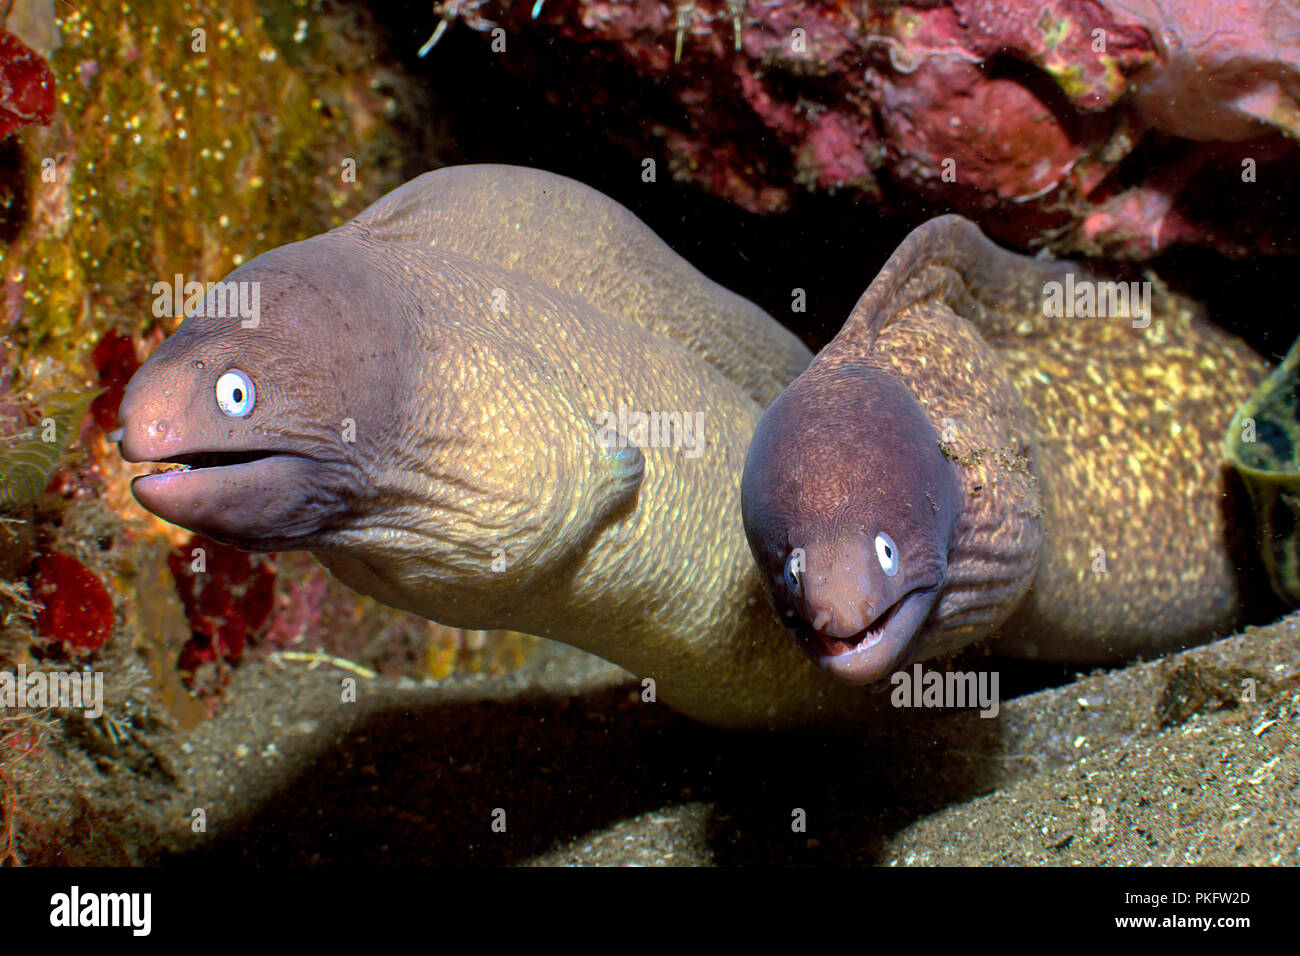 Two White-eyed Moray Eels (Siderea thyrsoidea), Dumaguete, Negros, Philippines Stock Photo